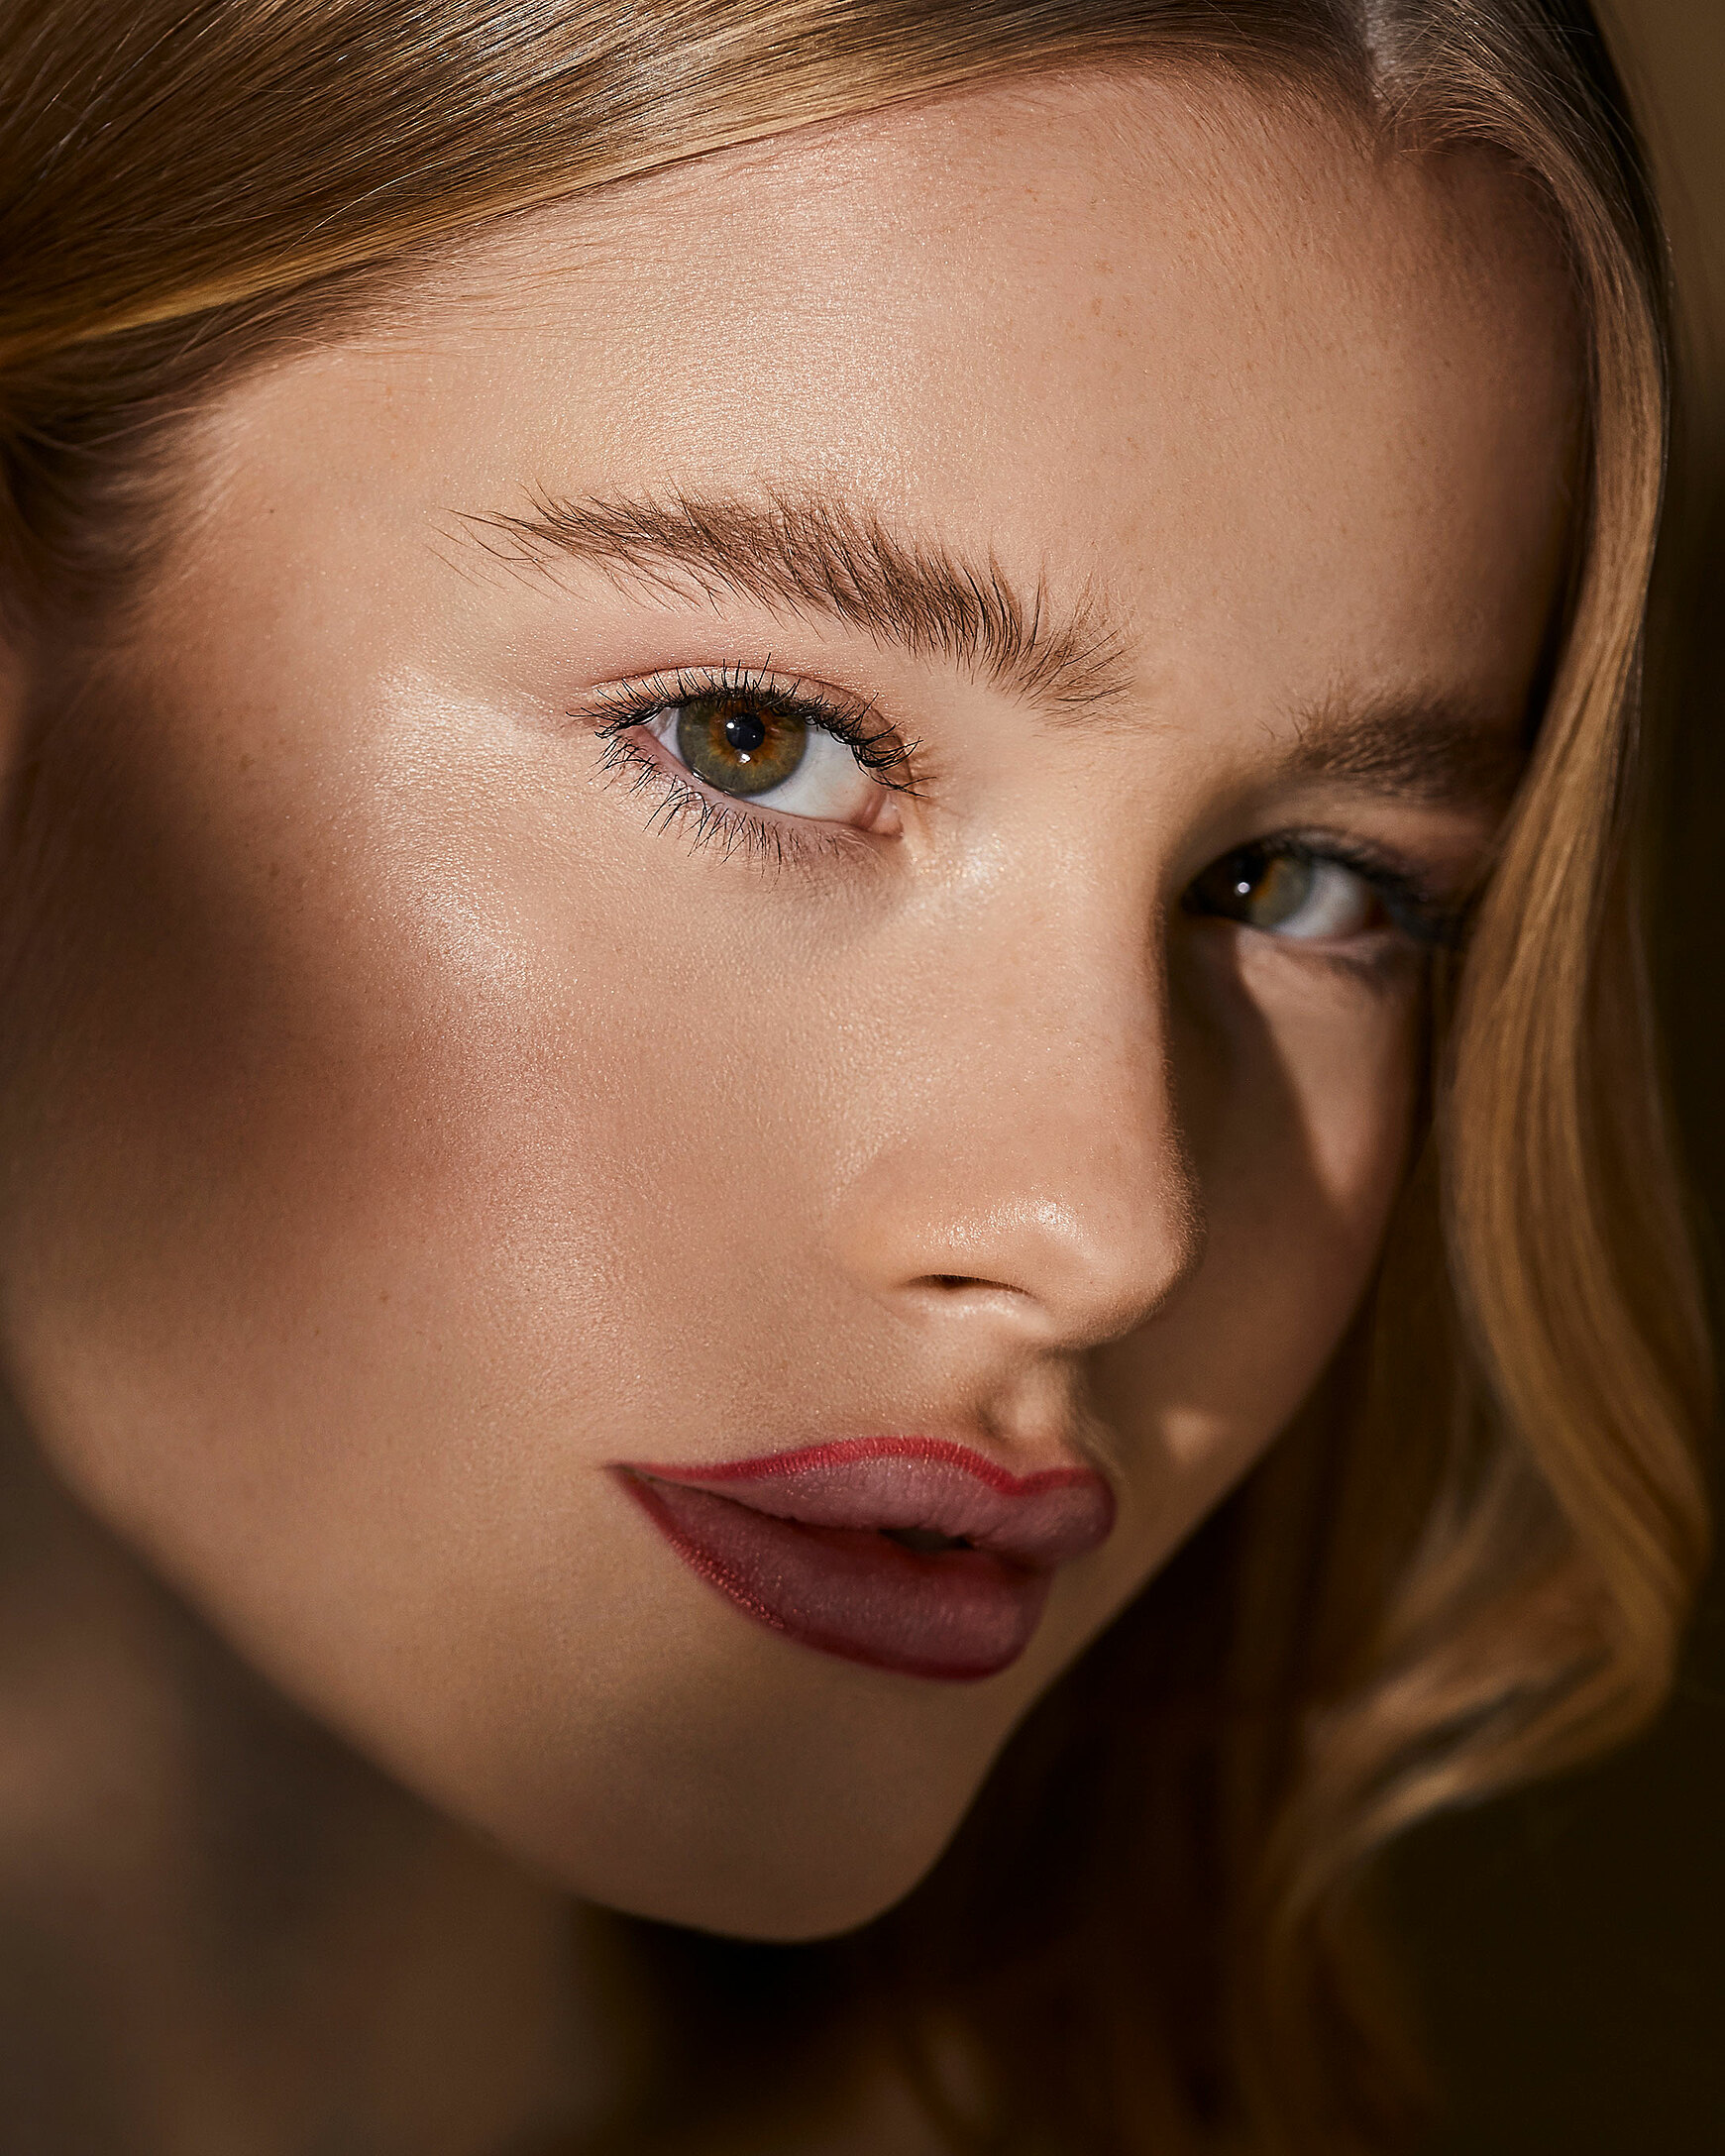 A close-up of a blonde female model. She wears red lipliner around her lips.